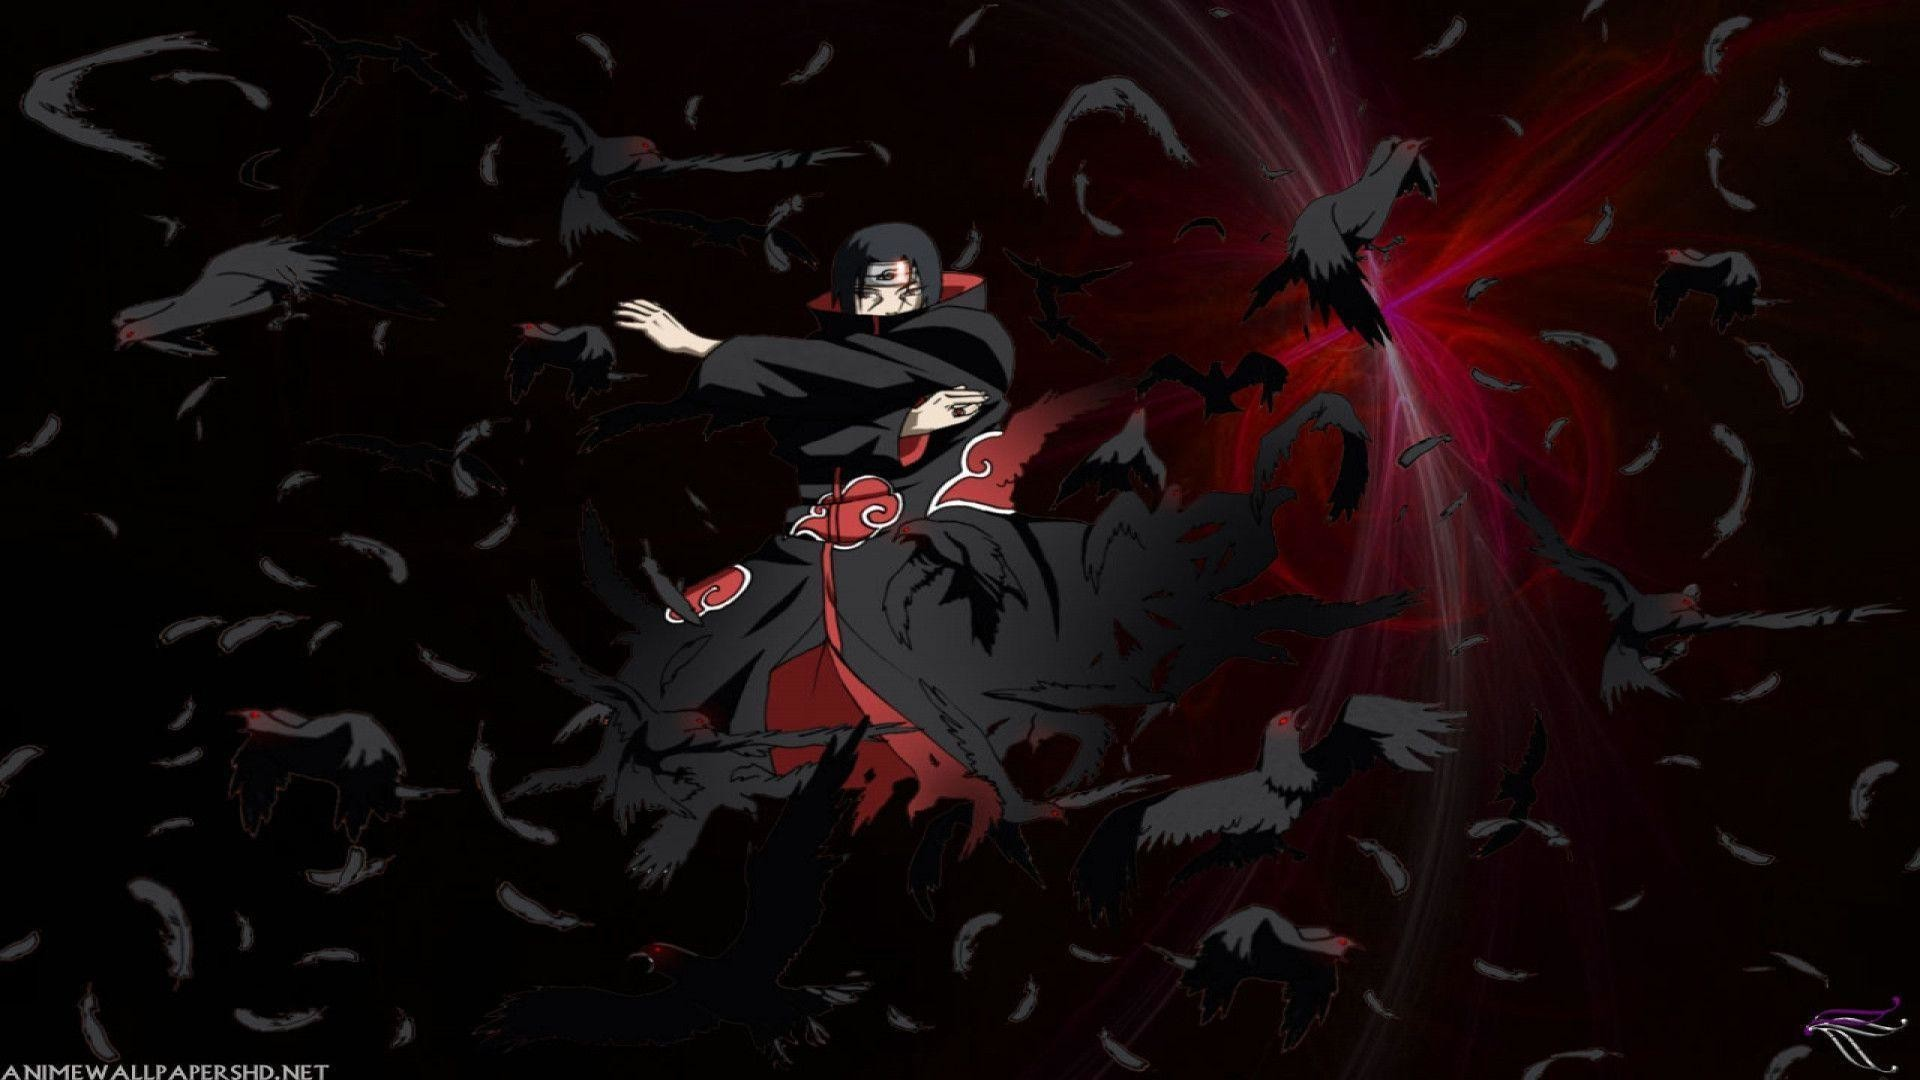 Uchiha Wallpapers 64 Images HD Wallpapers Download Free Images Wallpaper [1000image.com]